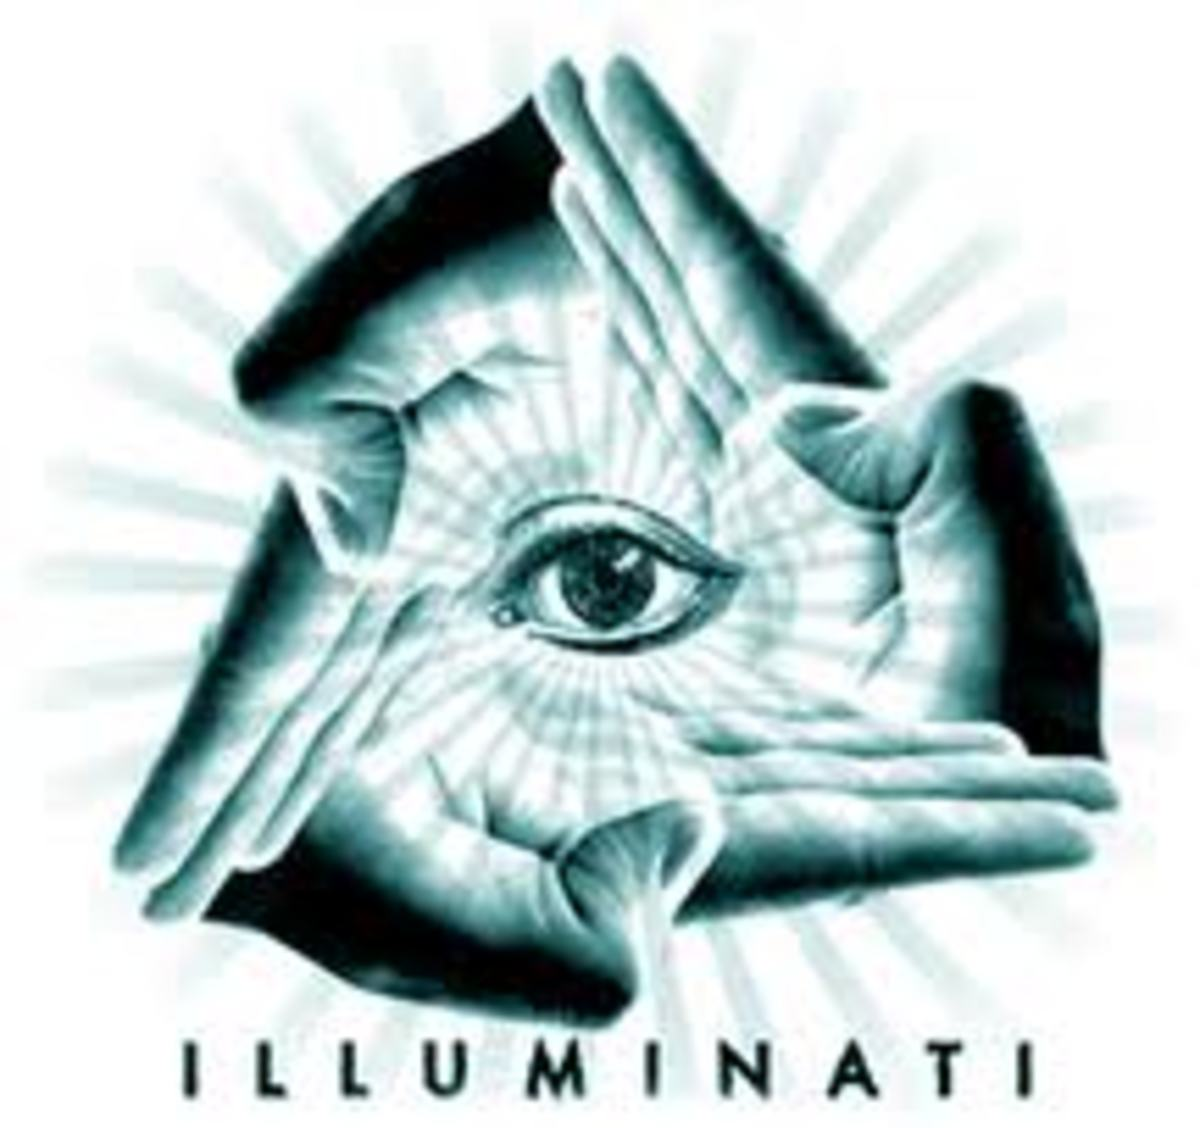 There is historic evidence proving the existence of the Illuminati.